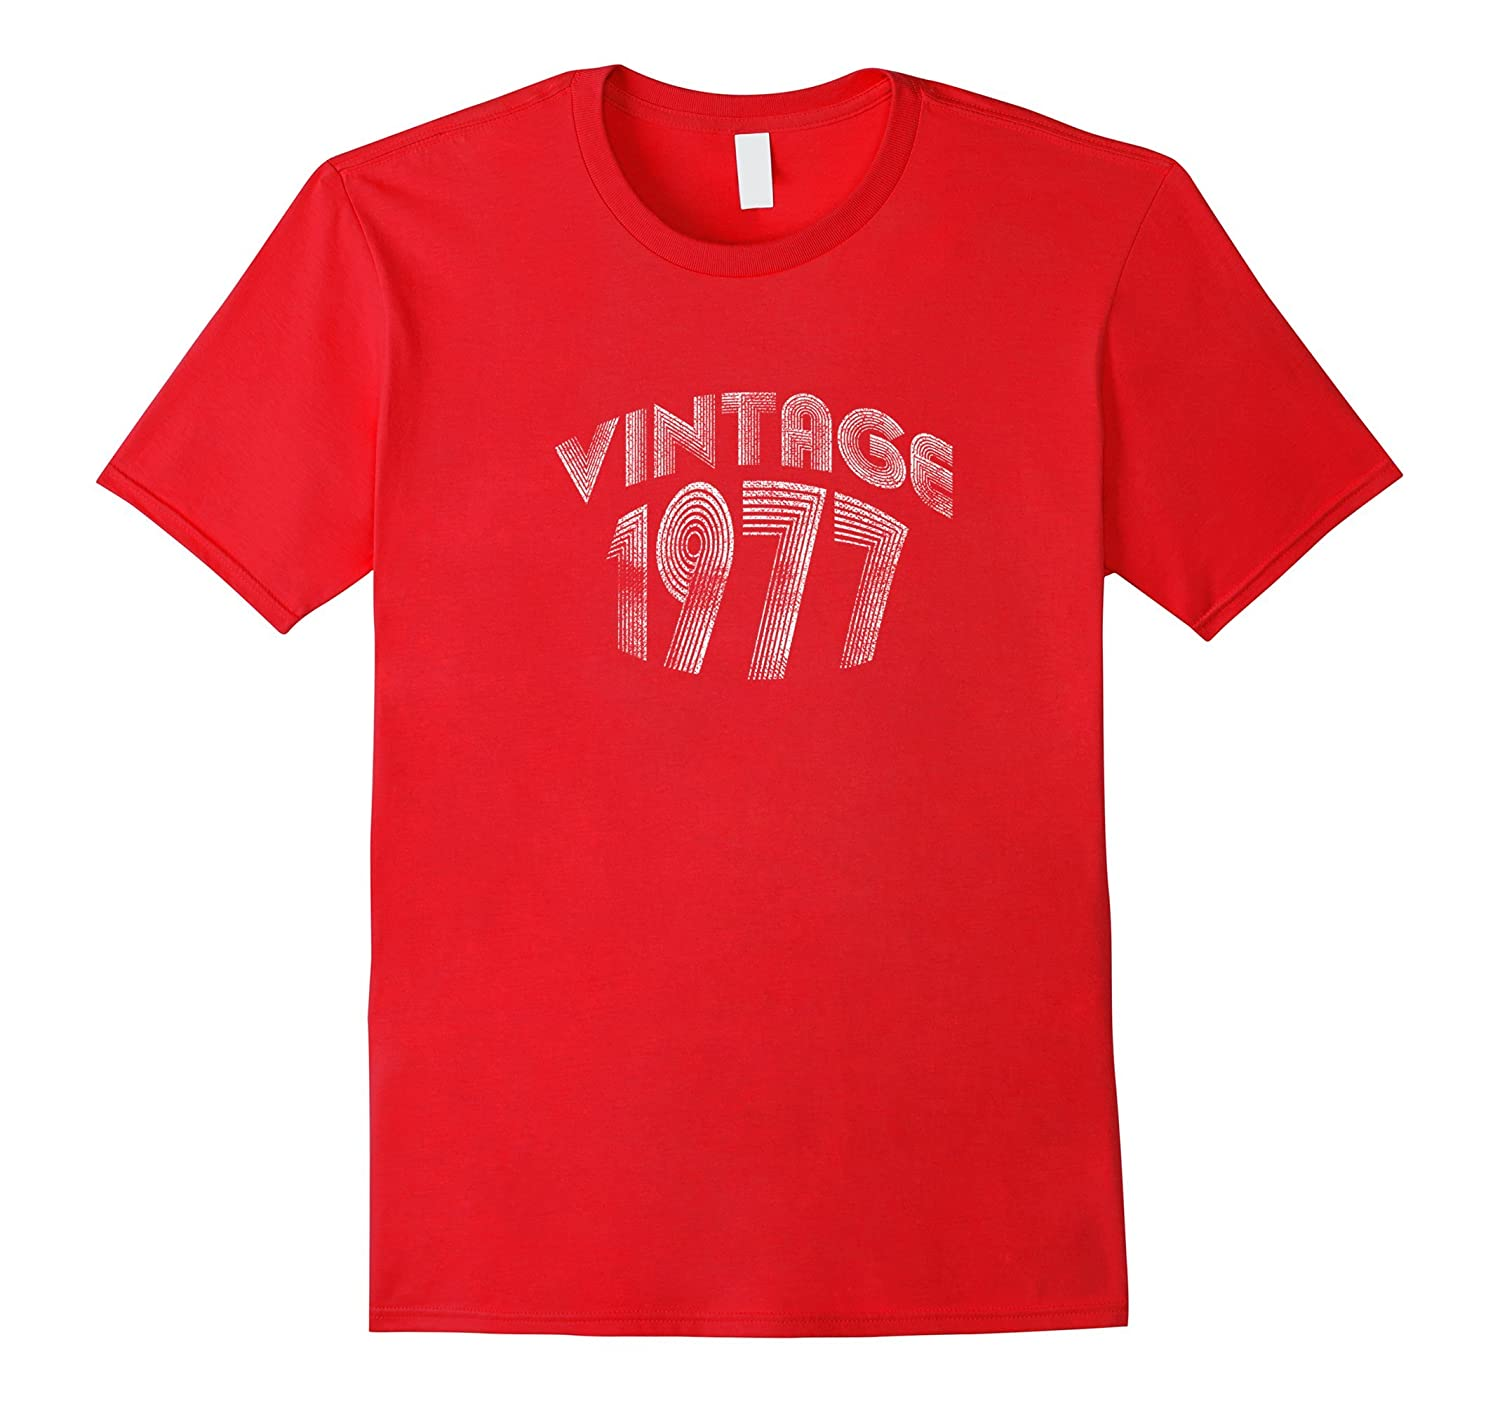 40th Birthday Shirt Vintage 1977 Retro Look Mens  Womens-CD